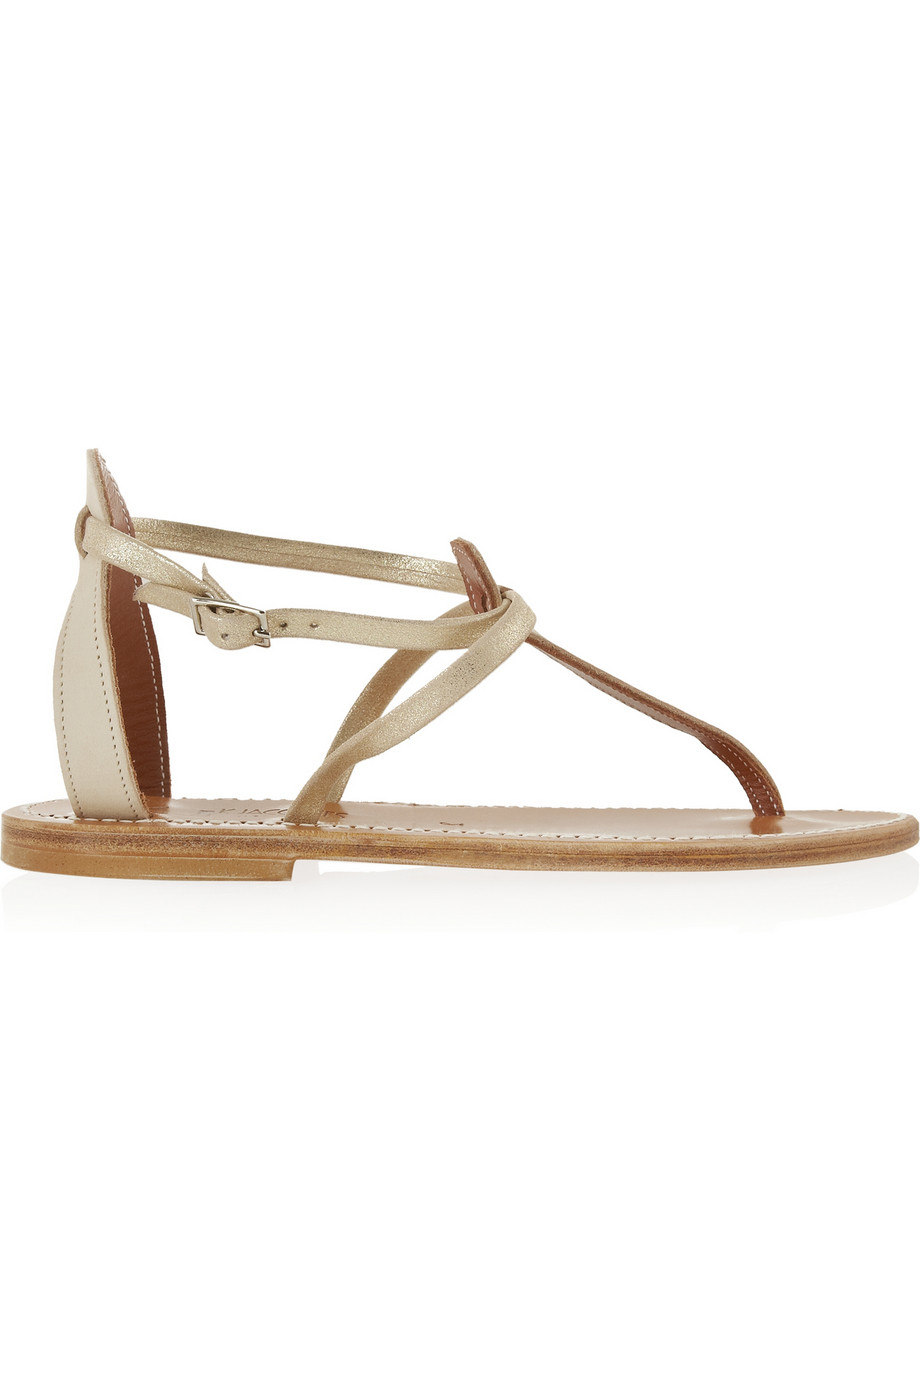 963c3a8494c4 Lyst - K. Jacques Buffon Tbar Leather Sandals in Natural